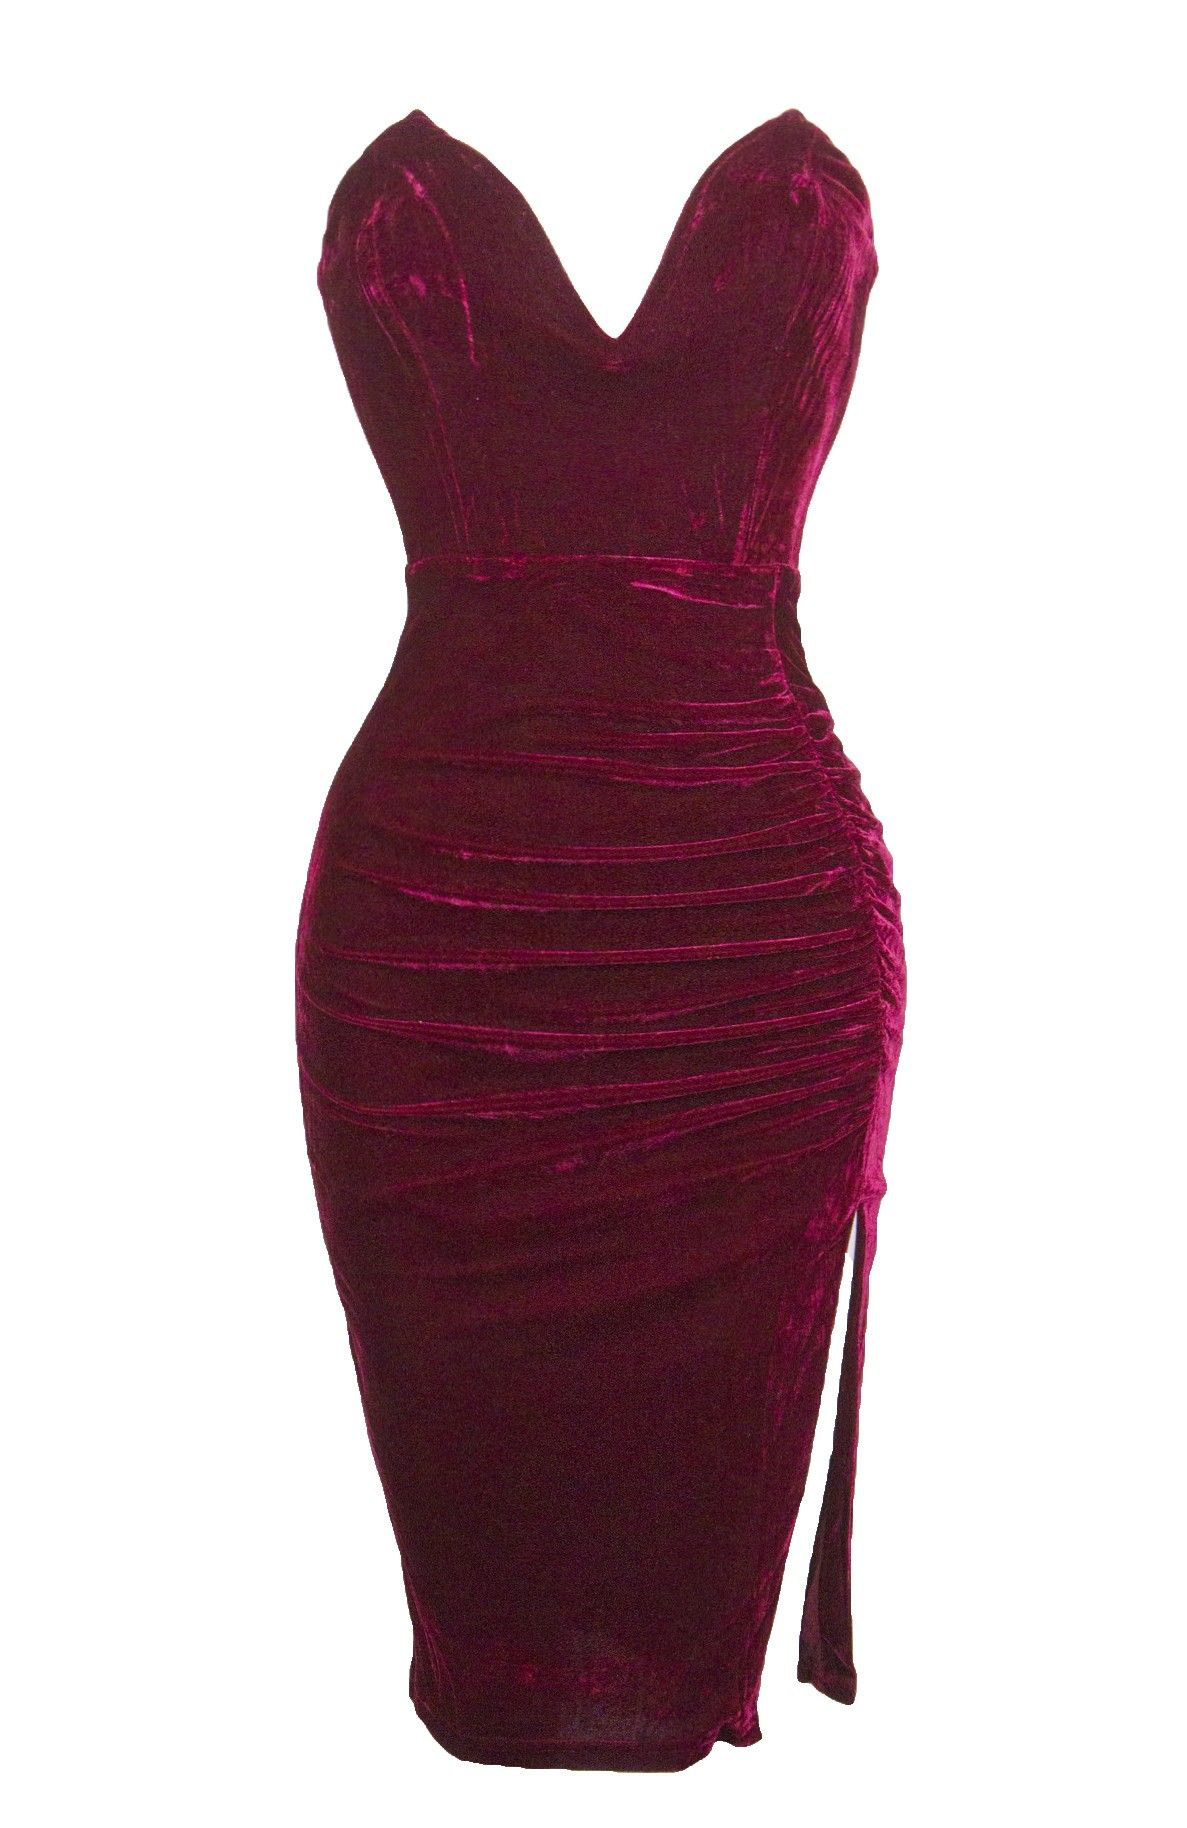 37de35d4b3c2d Red Velvet Sweetheart Ruched Dress - Dresses   Special occasions ...